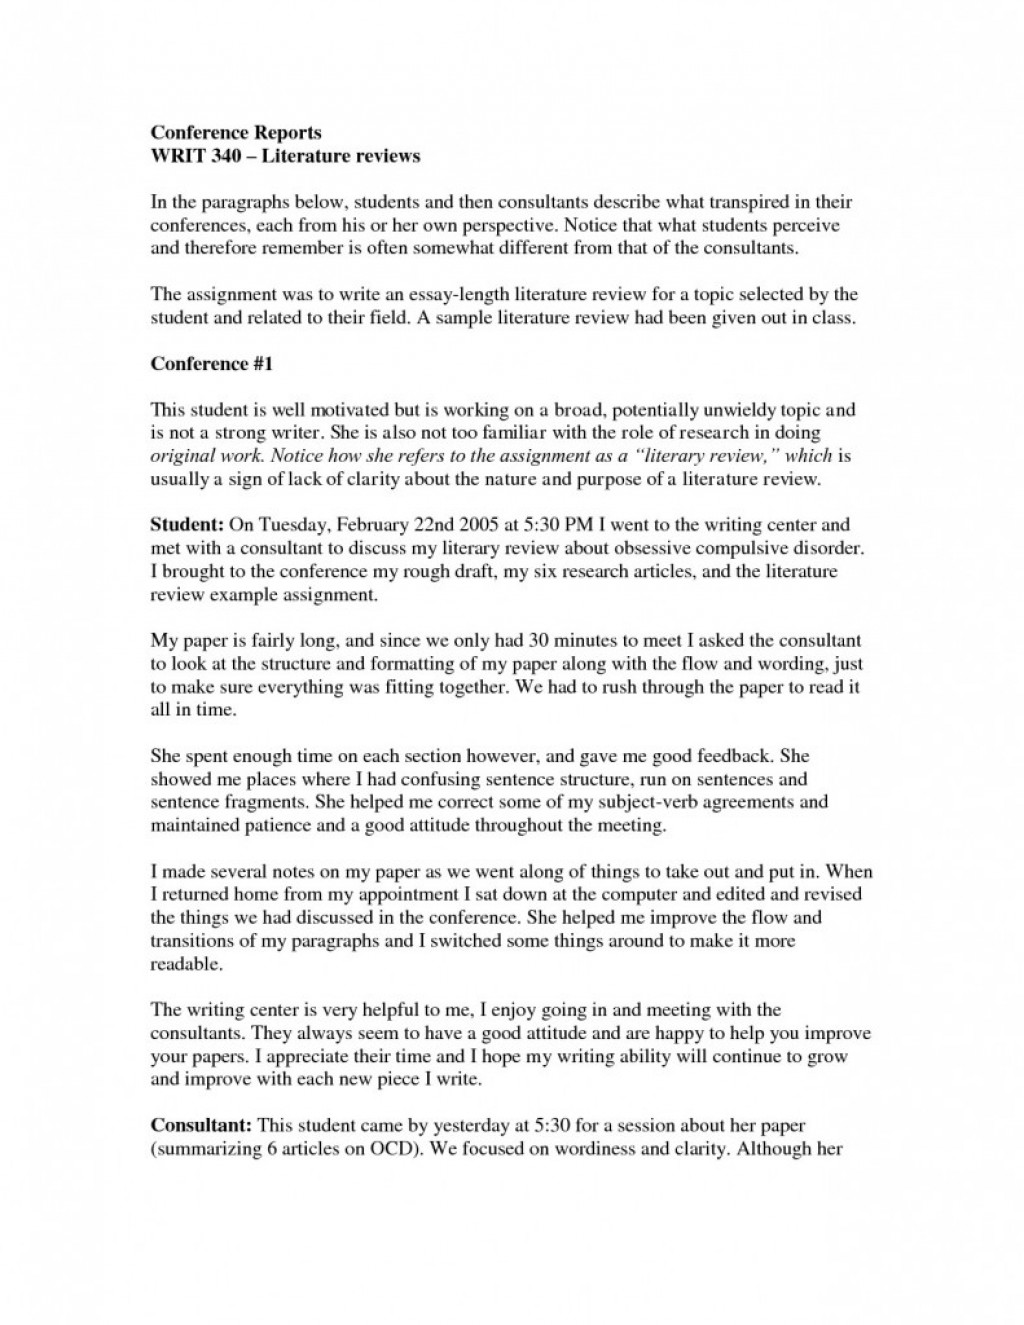 024 Resume Science Et Religion Essay On And Sample Proposal Style What Is Top A Argument The Purpose Of Large